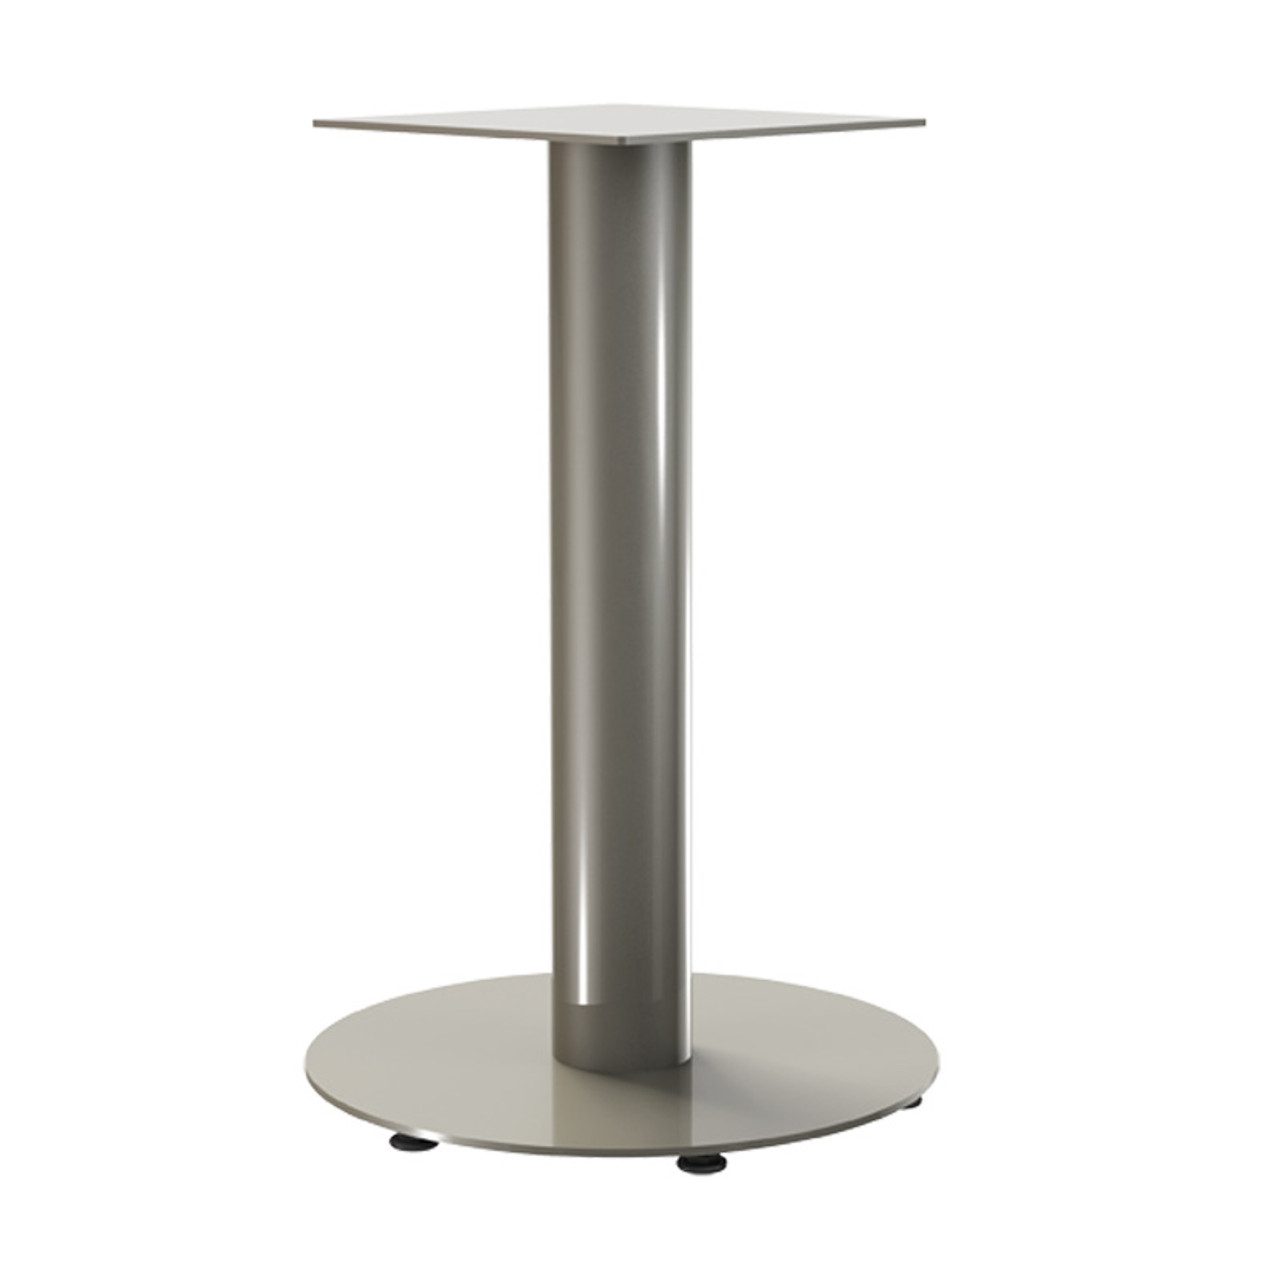 "Round Pedestal Base, 40-3/4"" Height, 23-3/4"" Base Diameter, 4"" diameter Column, with welded mounting plate, and levelers - Replacementtablelegs.com"